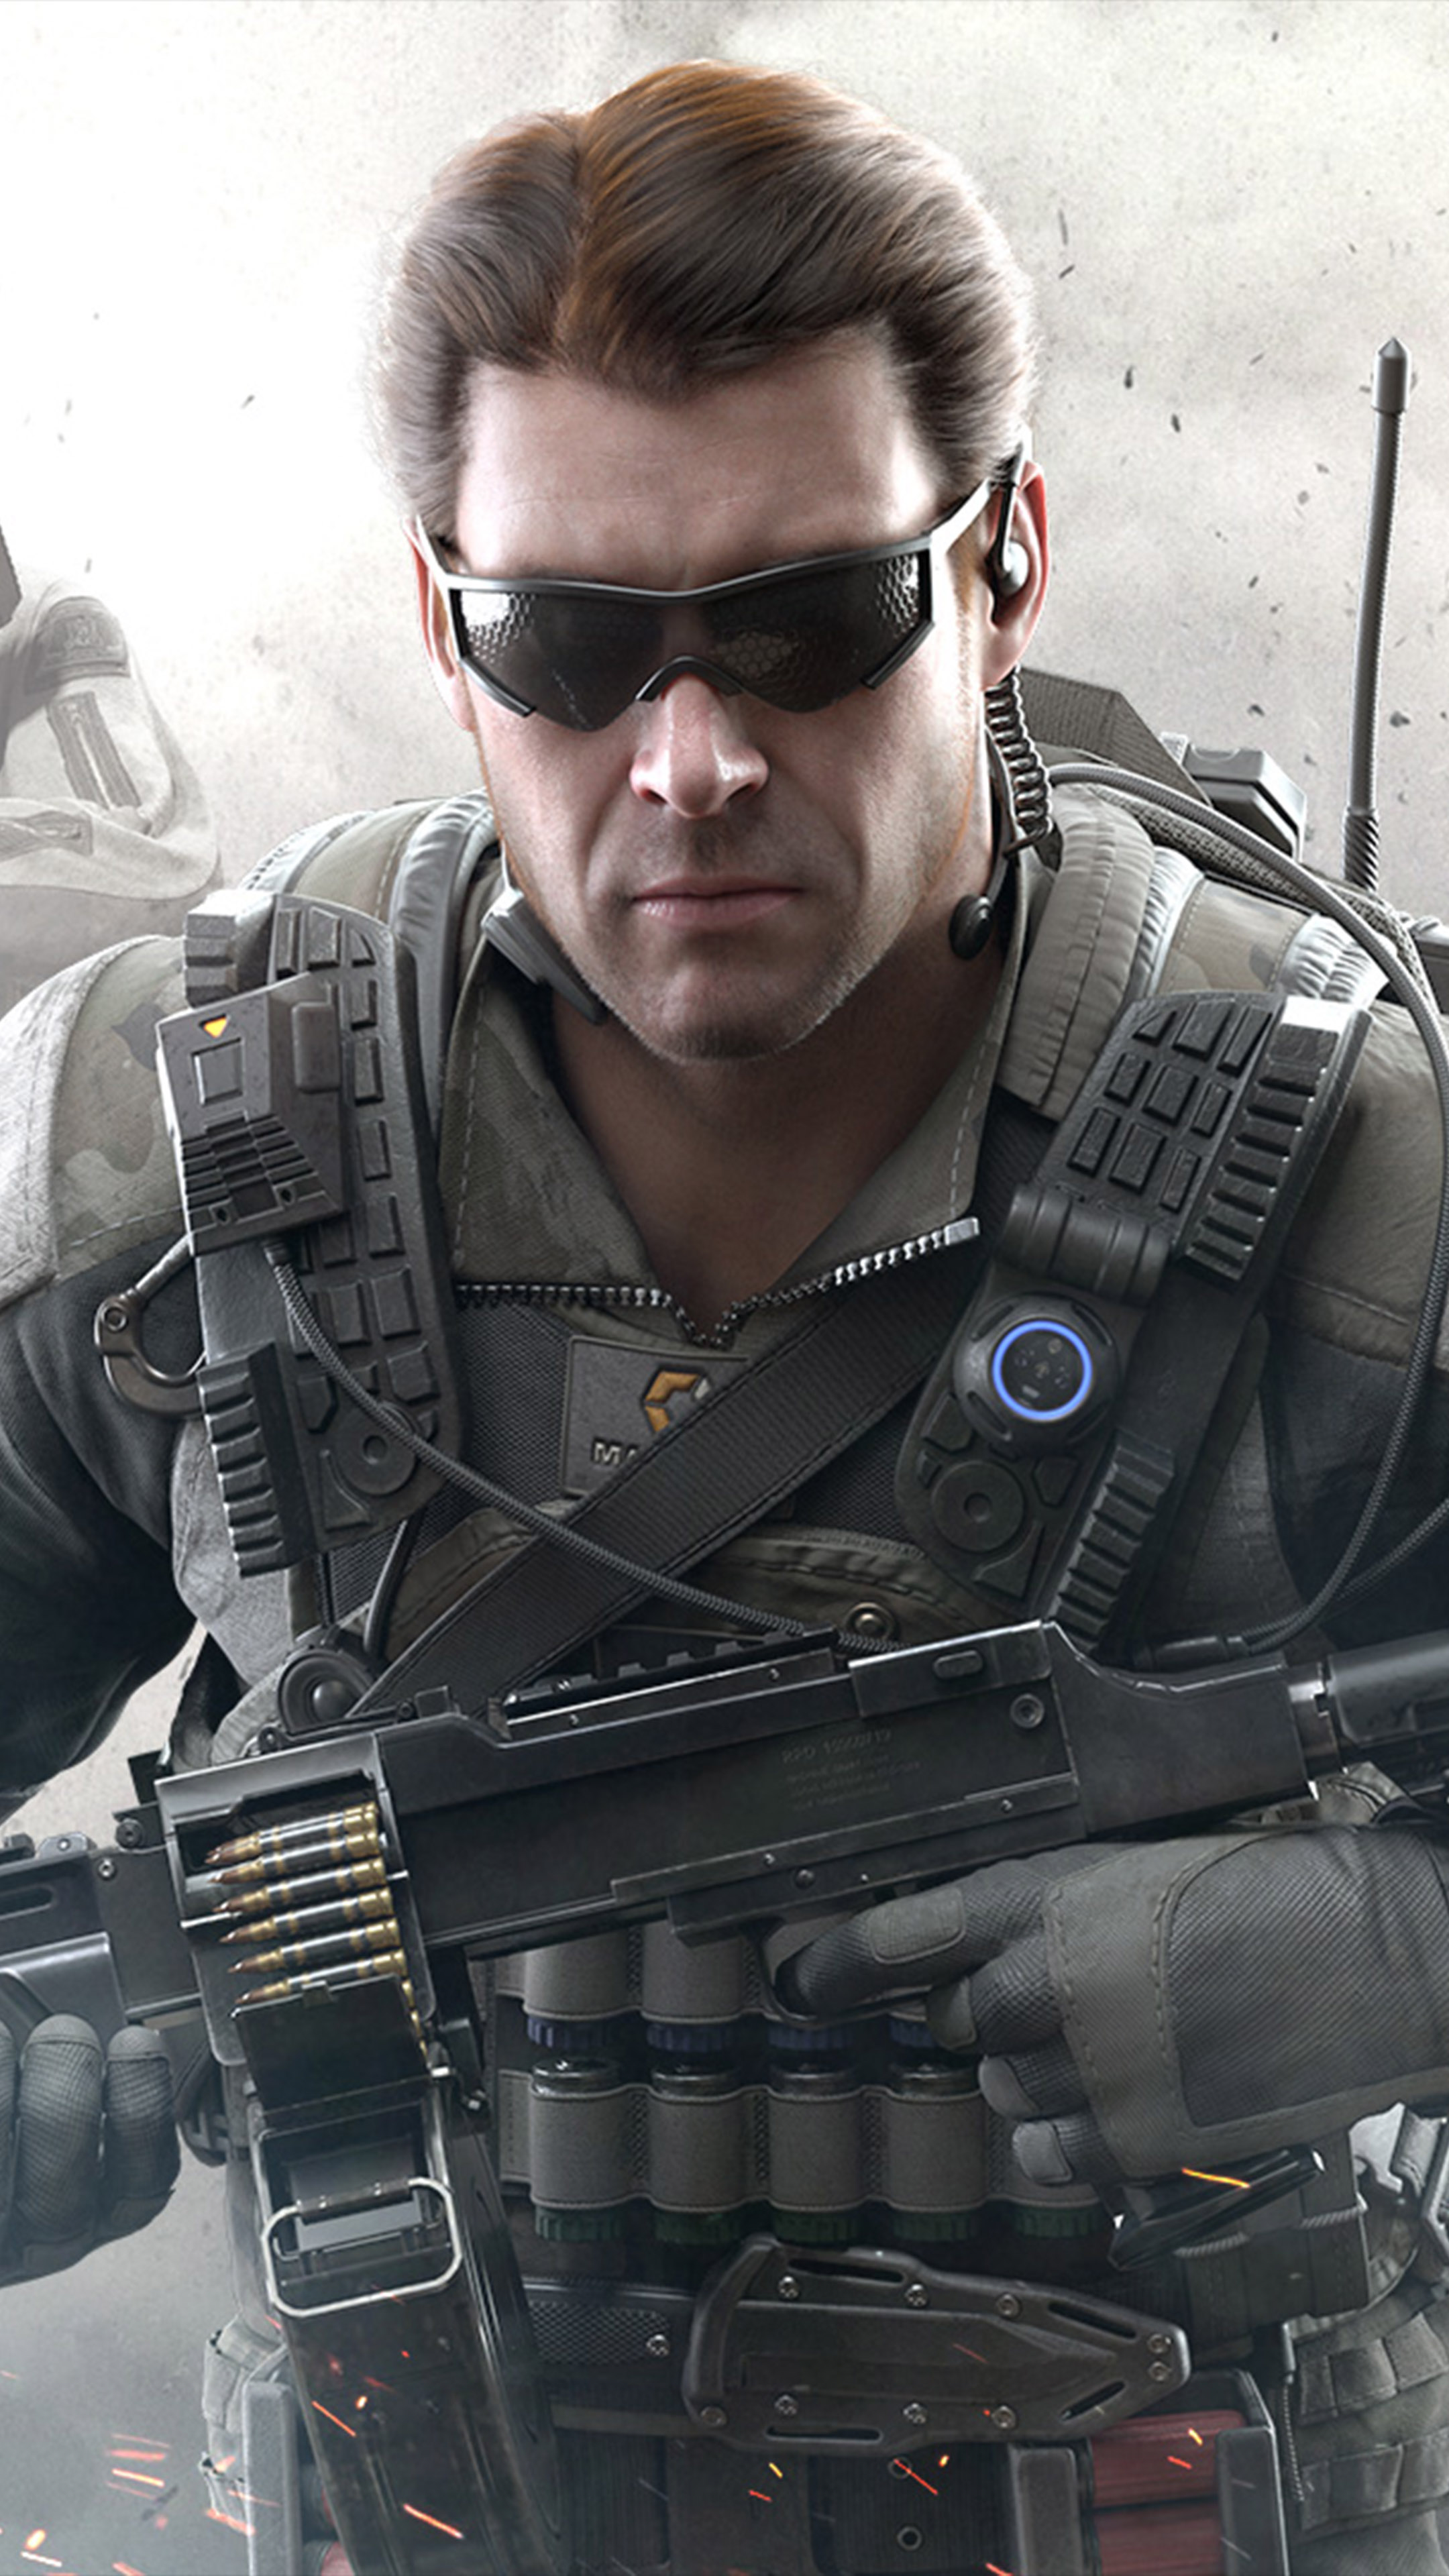 Soldier Call of Duty Mobile Free 4K Ultra HD Mobile Wallpaper